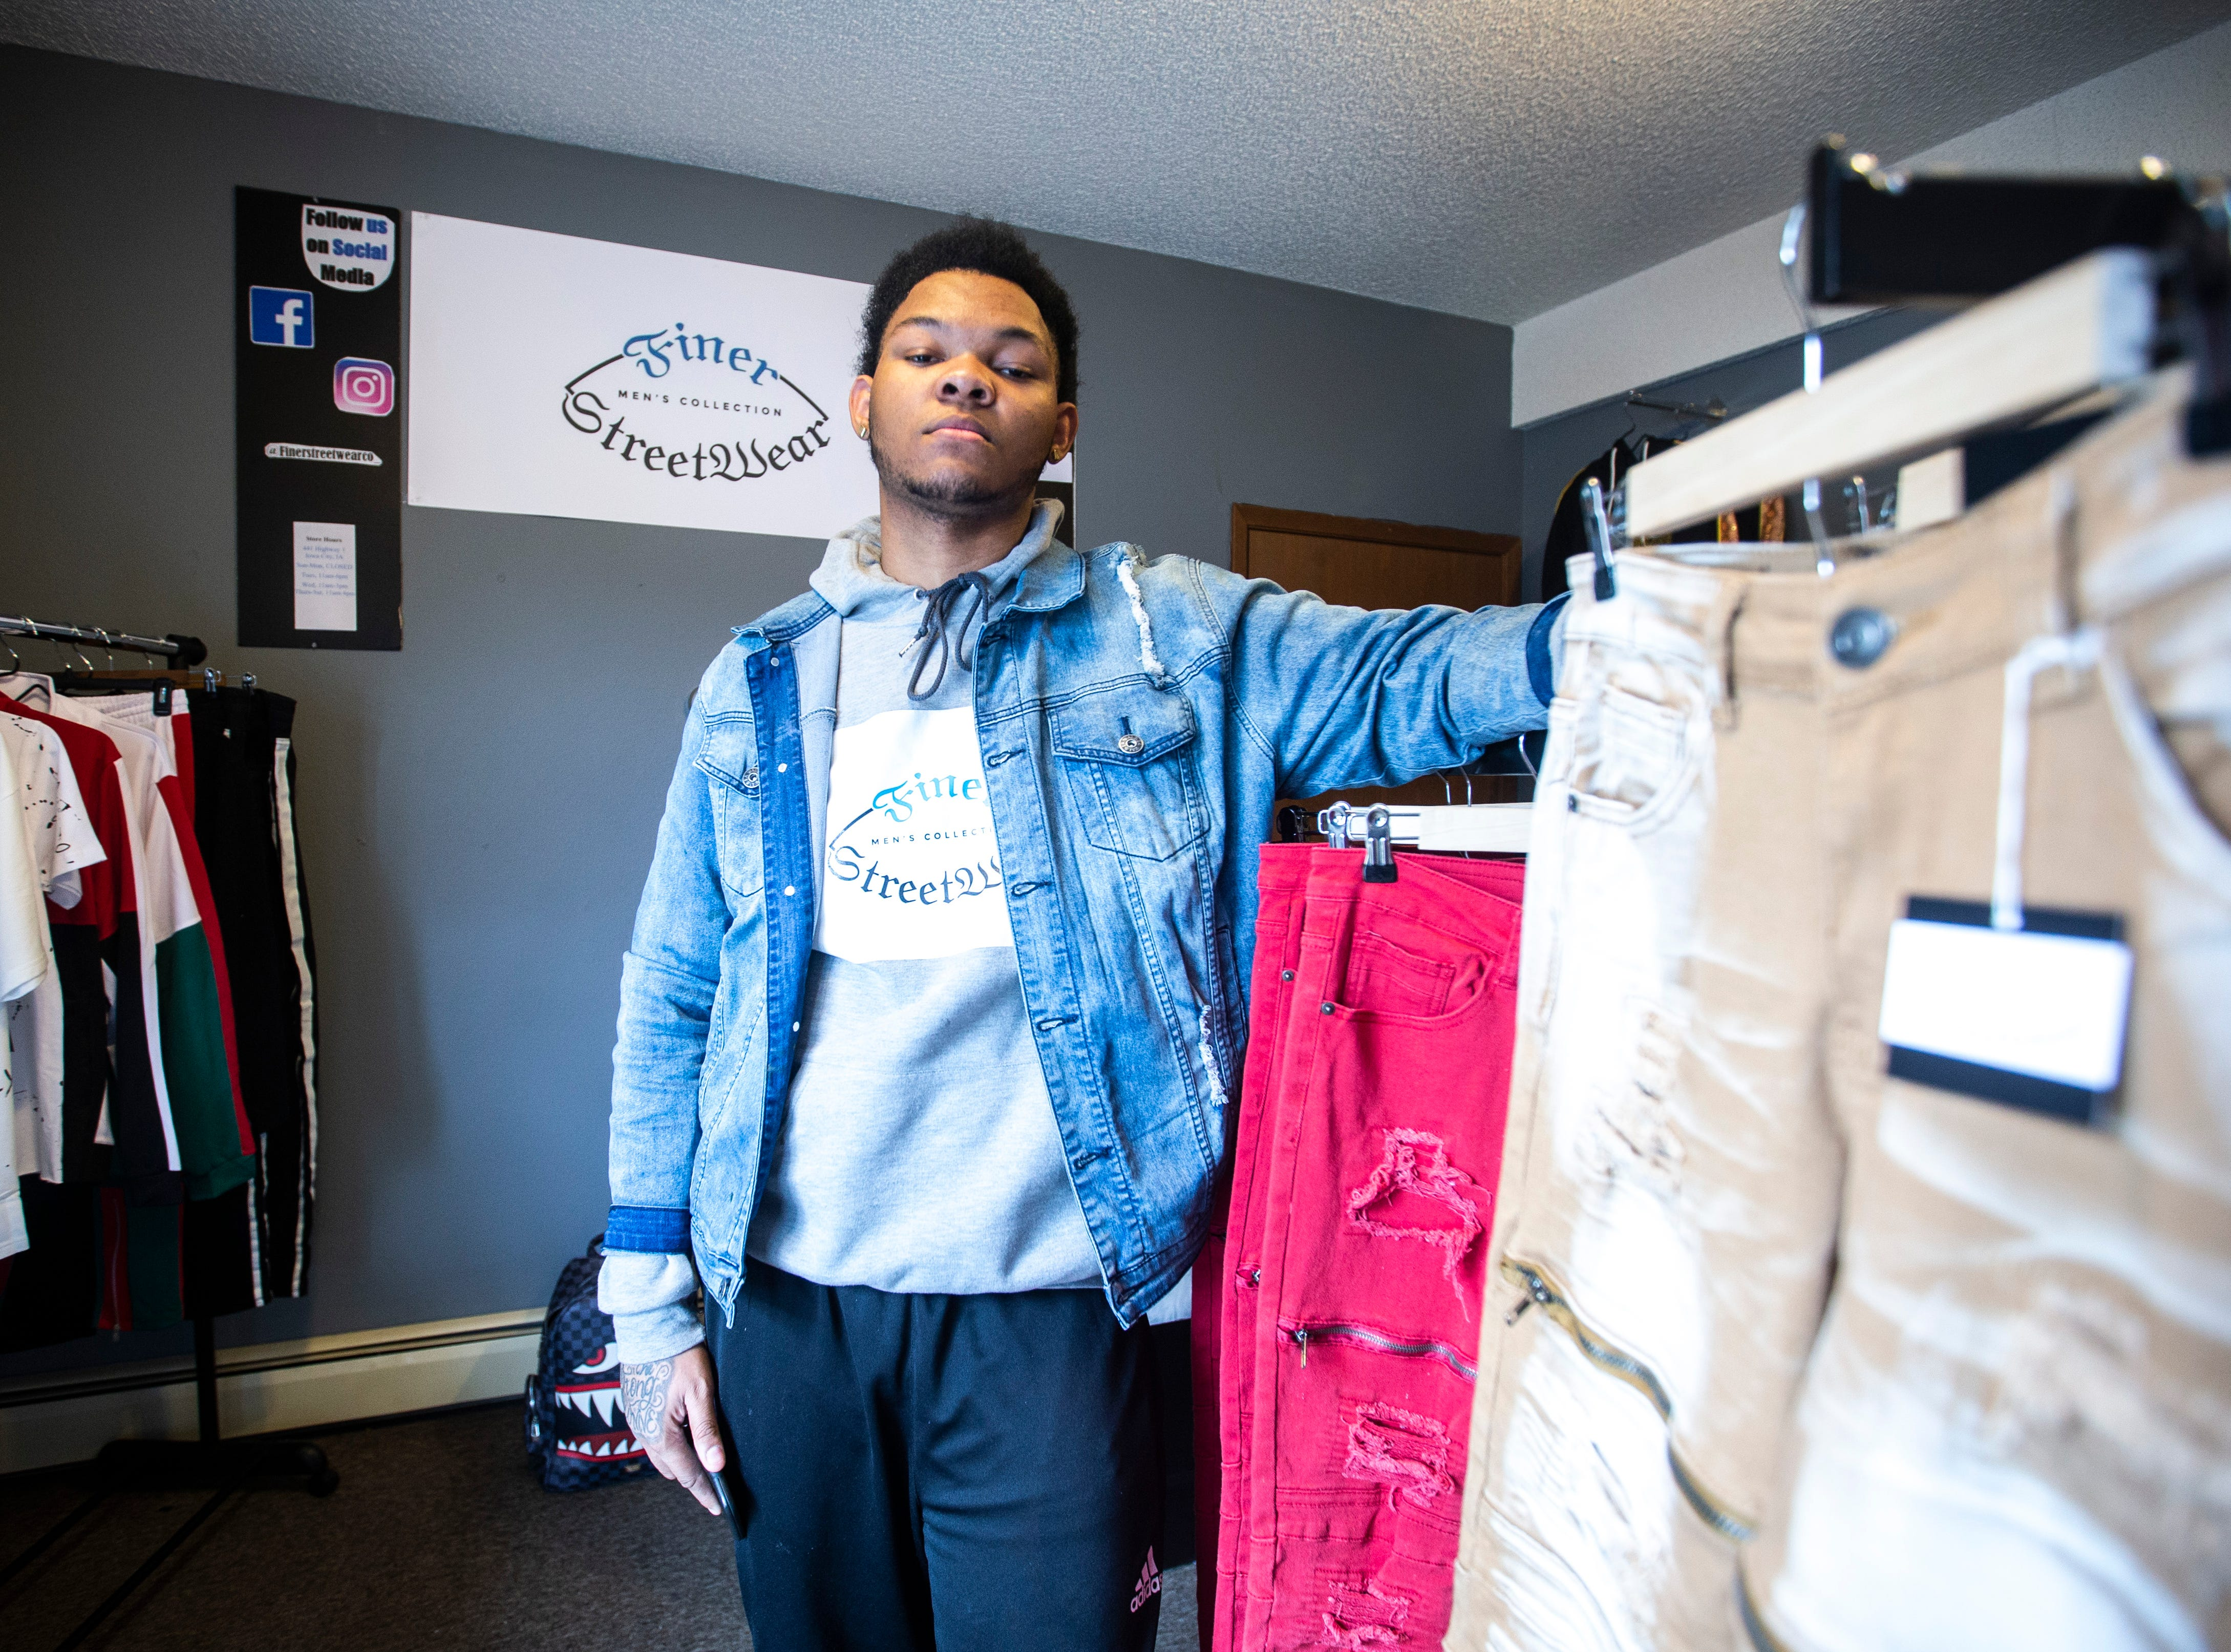 Markeece Johnson poses for a portrait on Tuesday, Feb. 26, 2019, inside Finer Streetwear Co. at 441 Highway 1 West in Iowa City, Iowa. Johnson opened the store in November of 2018.